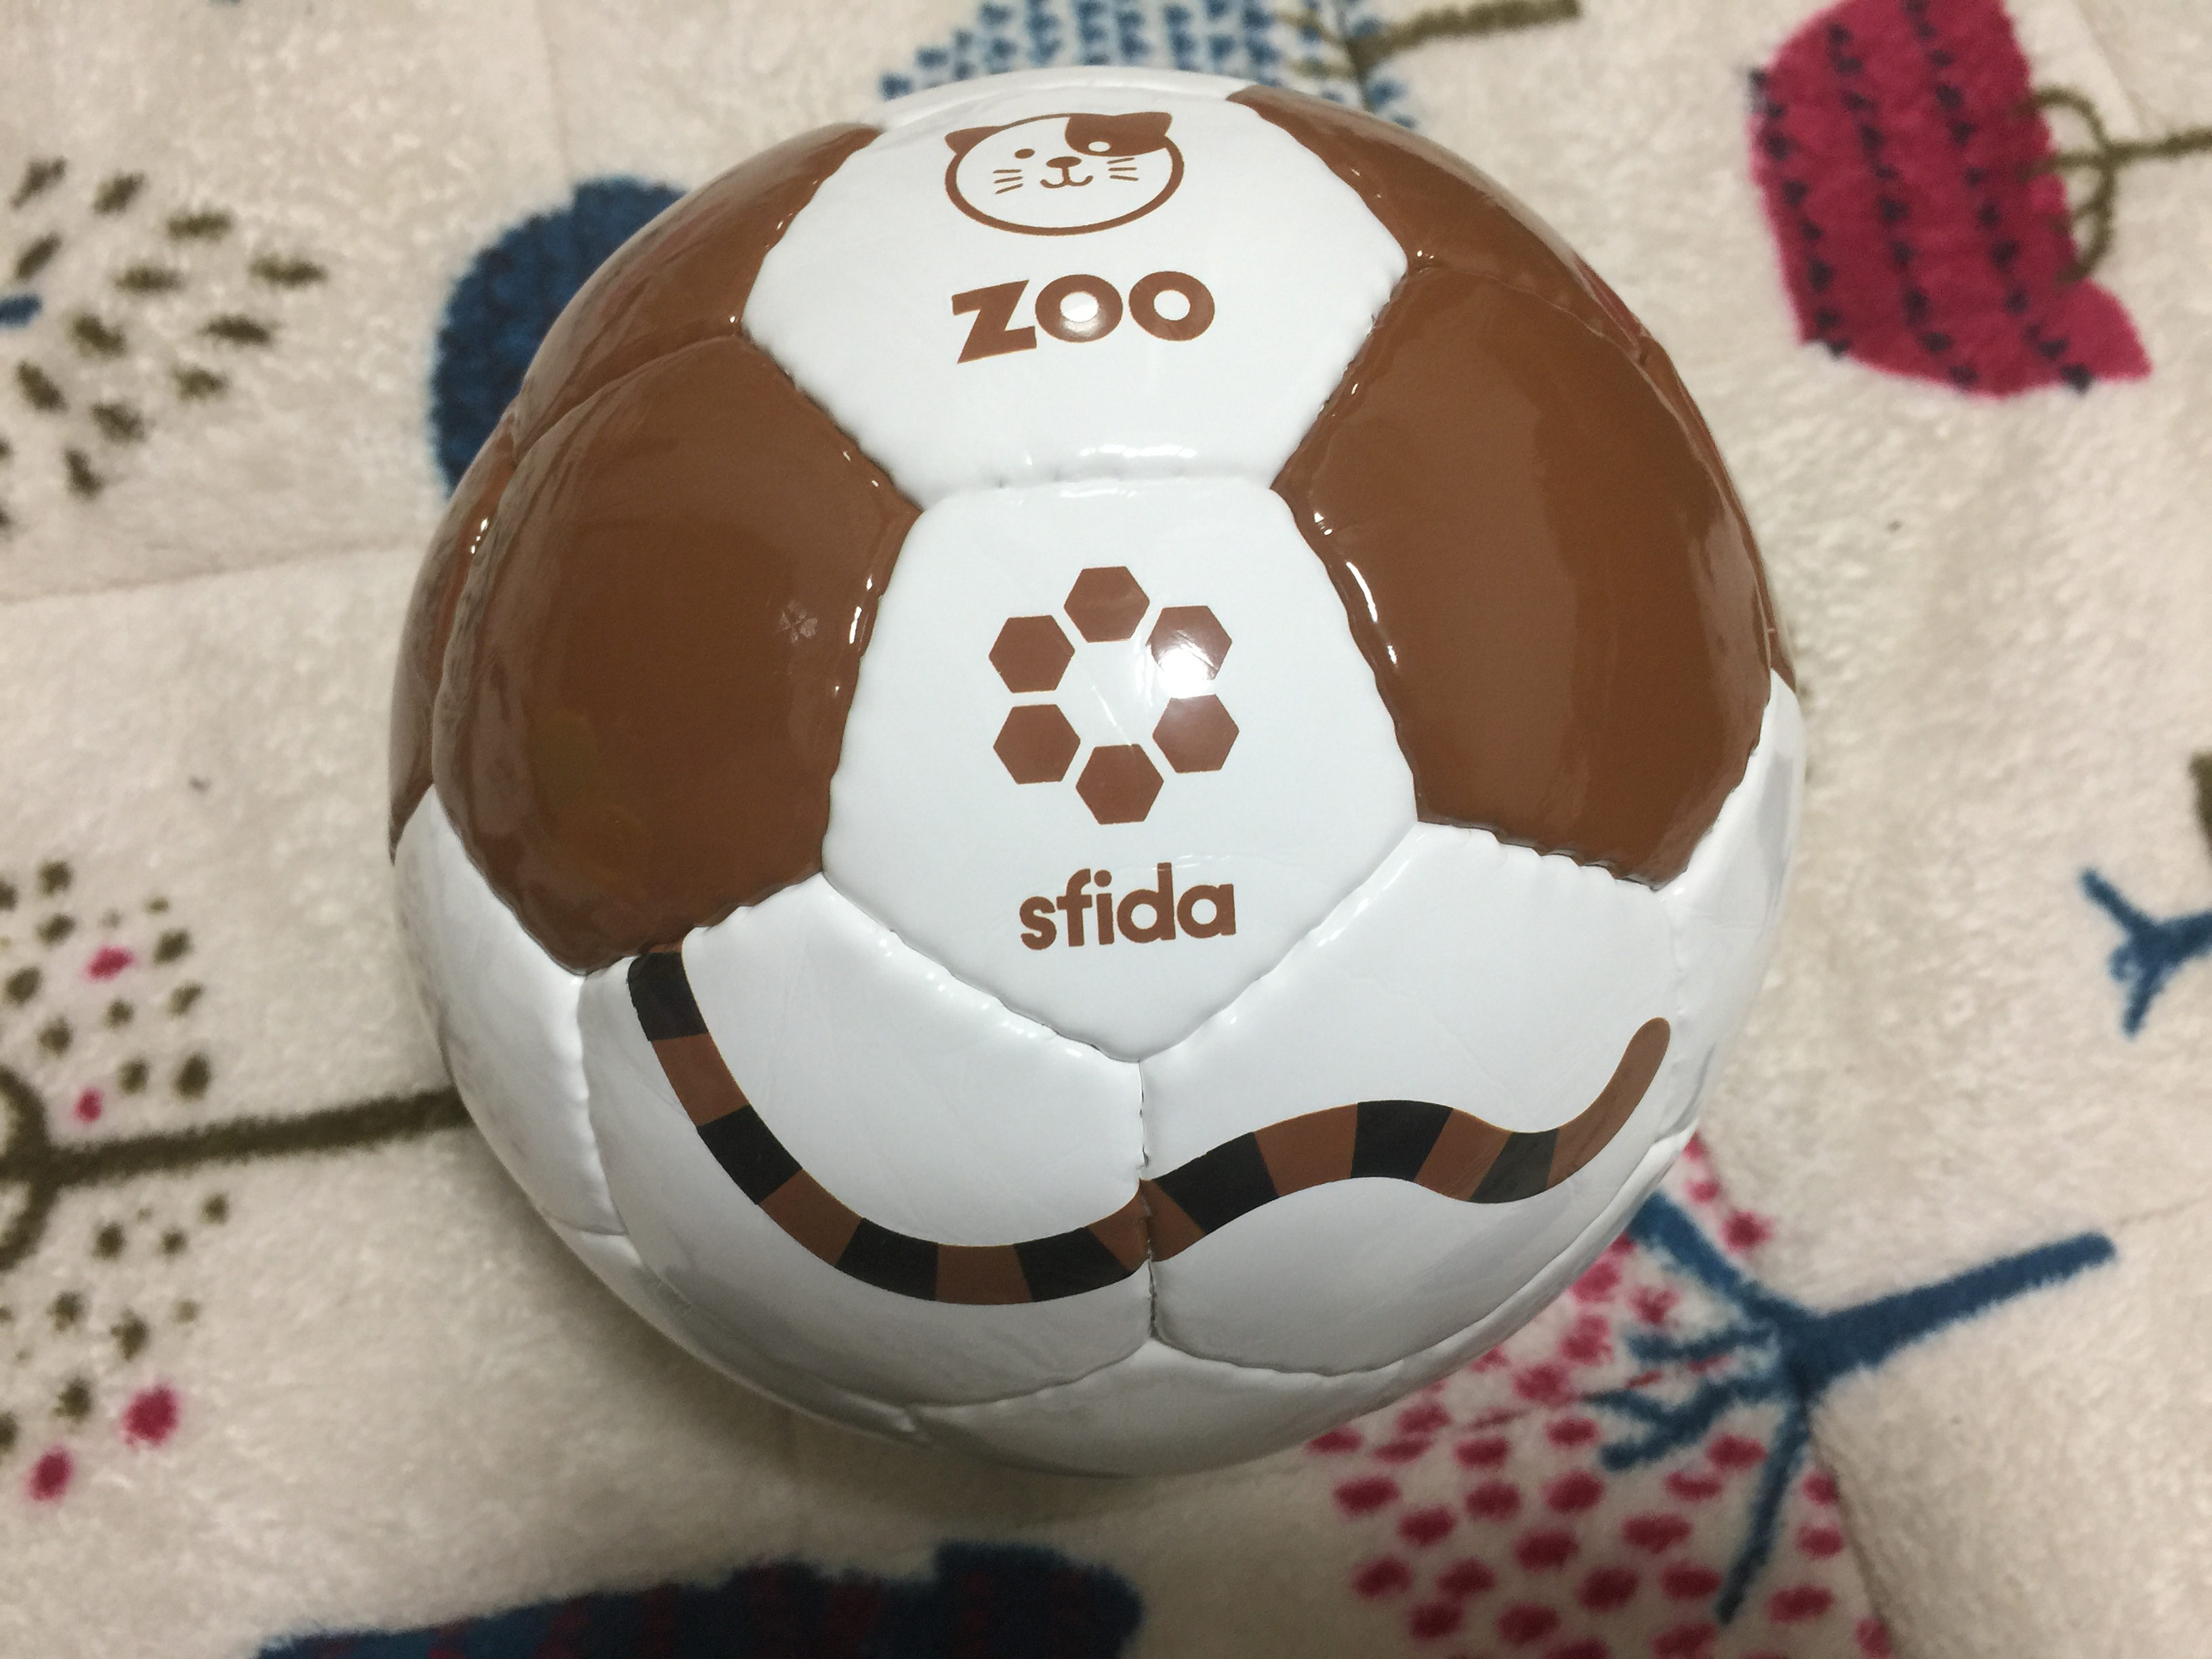 football zoo sfida